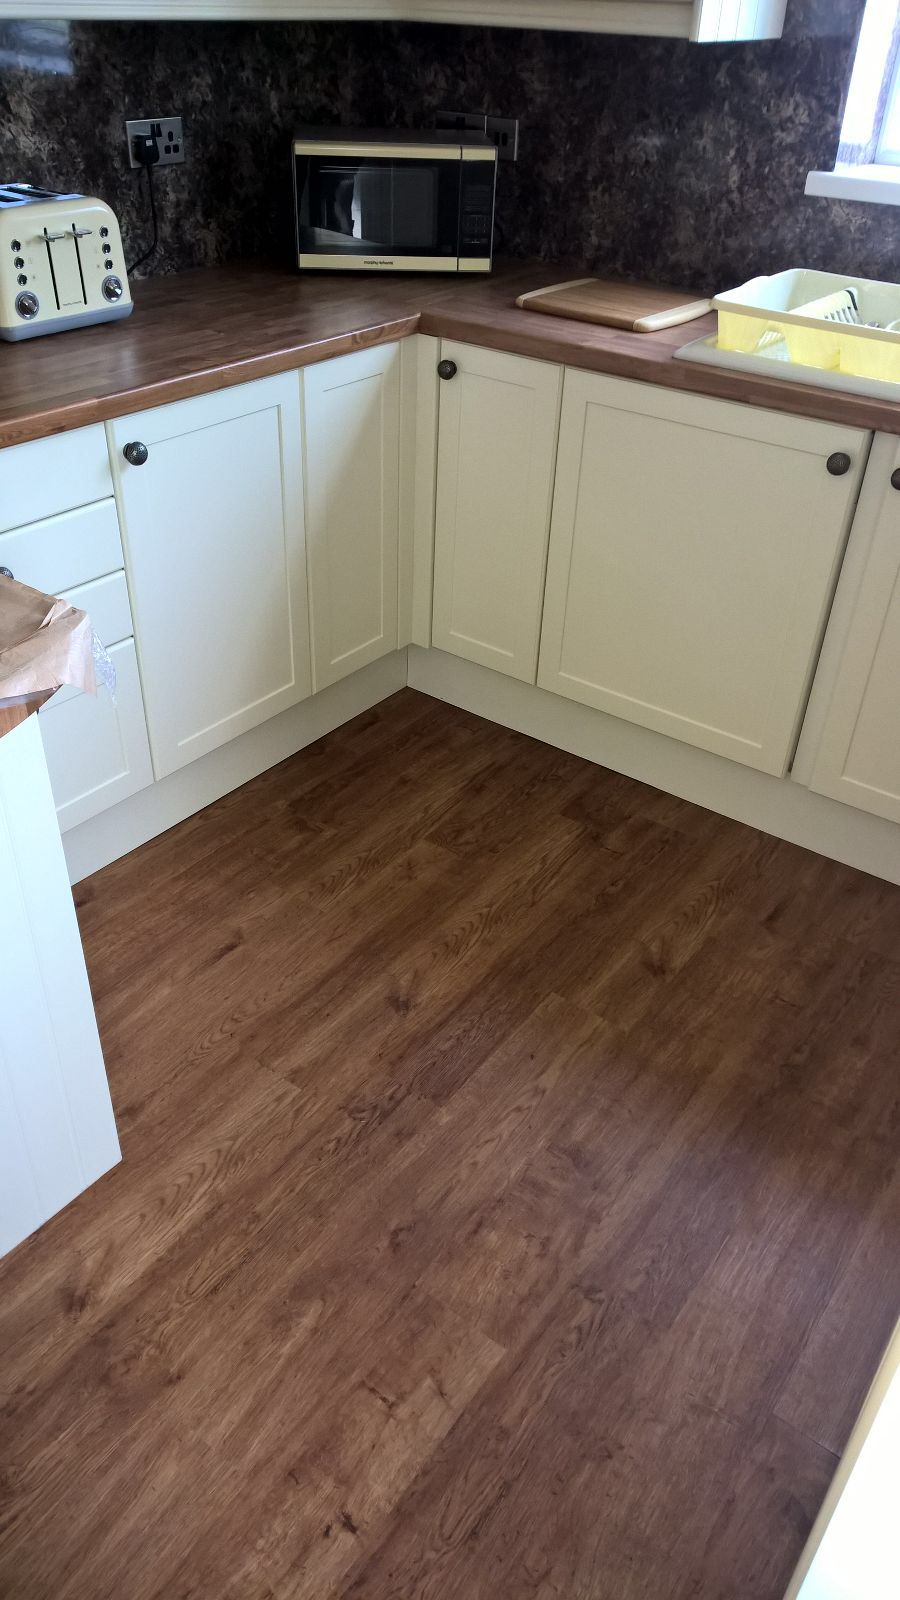 Polyflor Camaro Lvt Vinyl Tiles Wood Plank Design Flooring Fitted